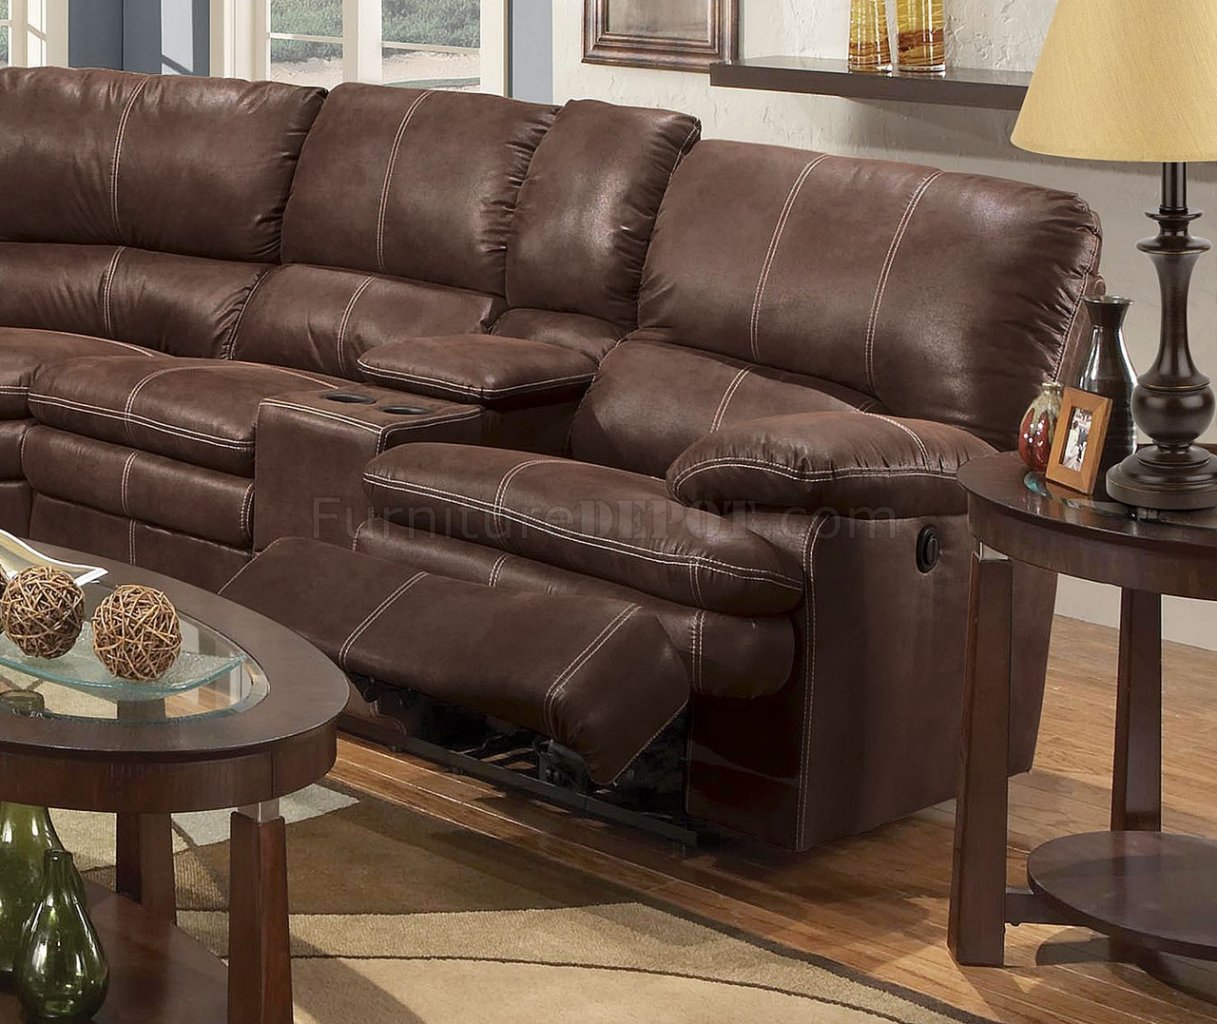 baseball leather sofa chesterfield grey velvet rustic brown microfiber reclining sectional w